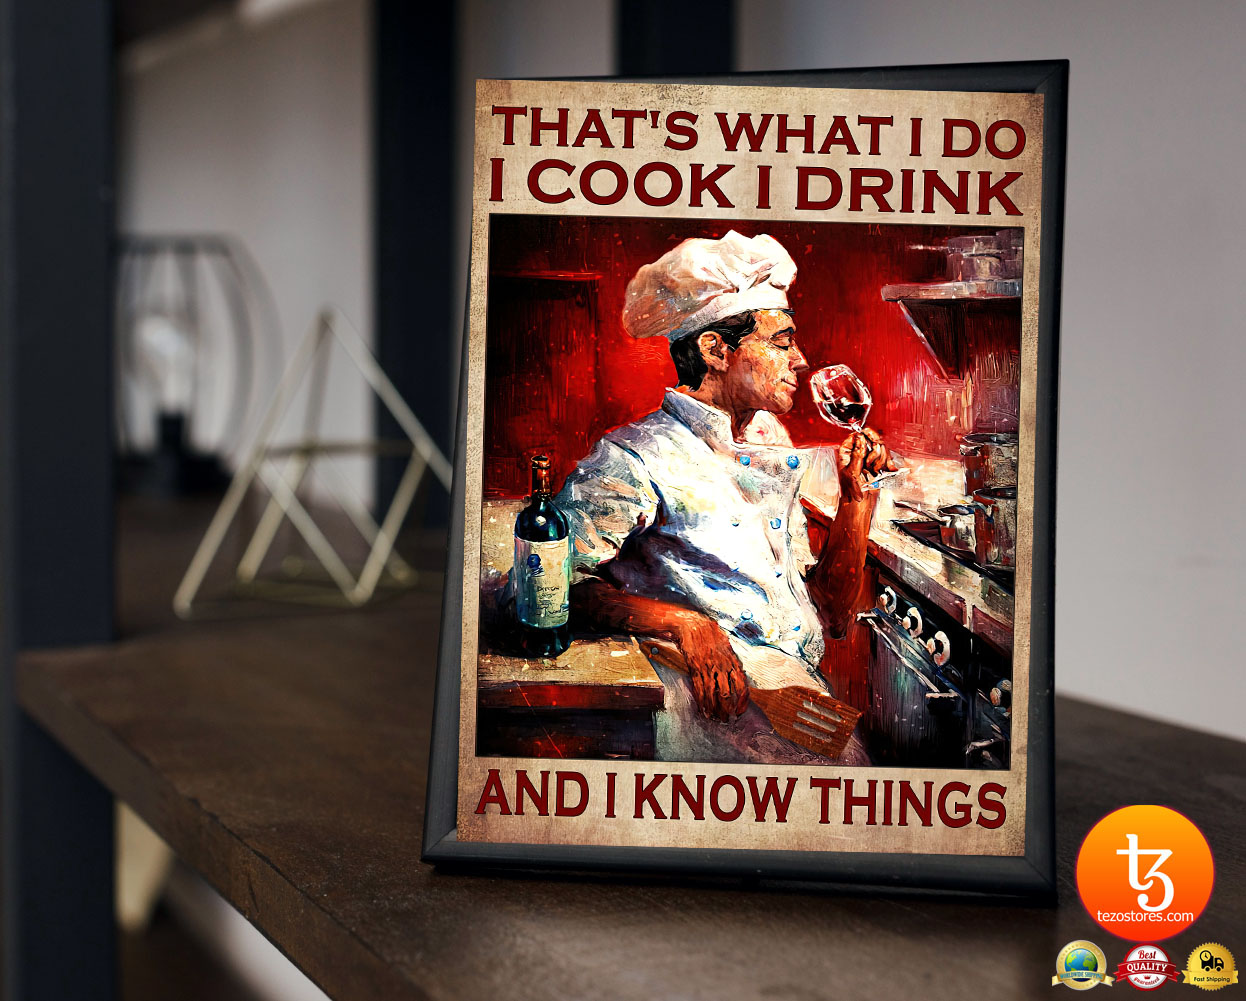 Thats what I do I cook I drink and I know things poster3